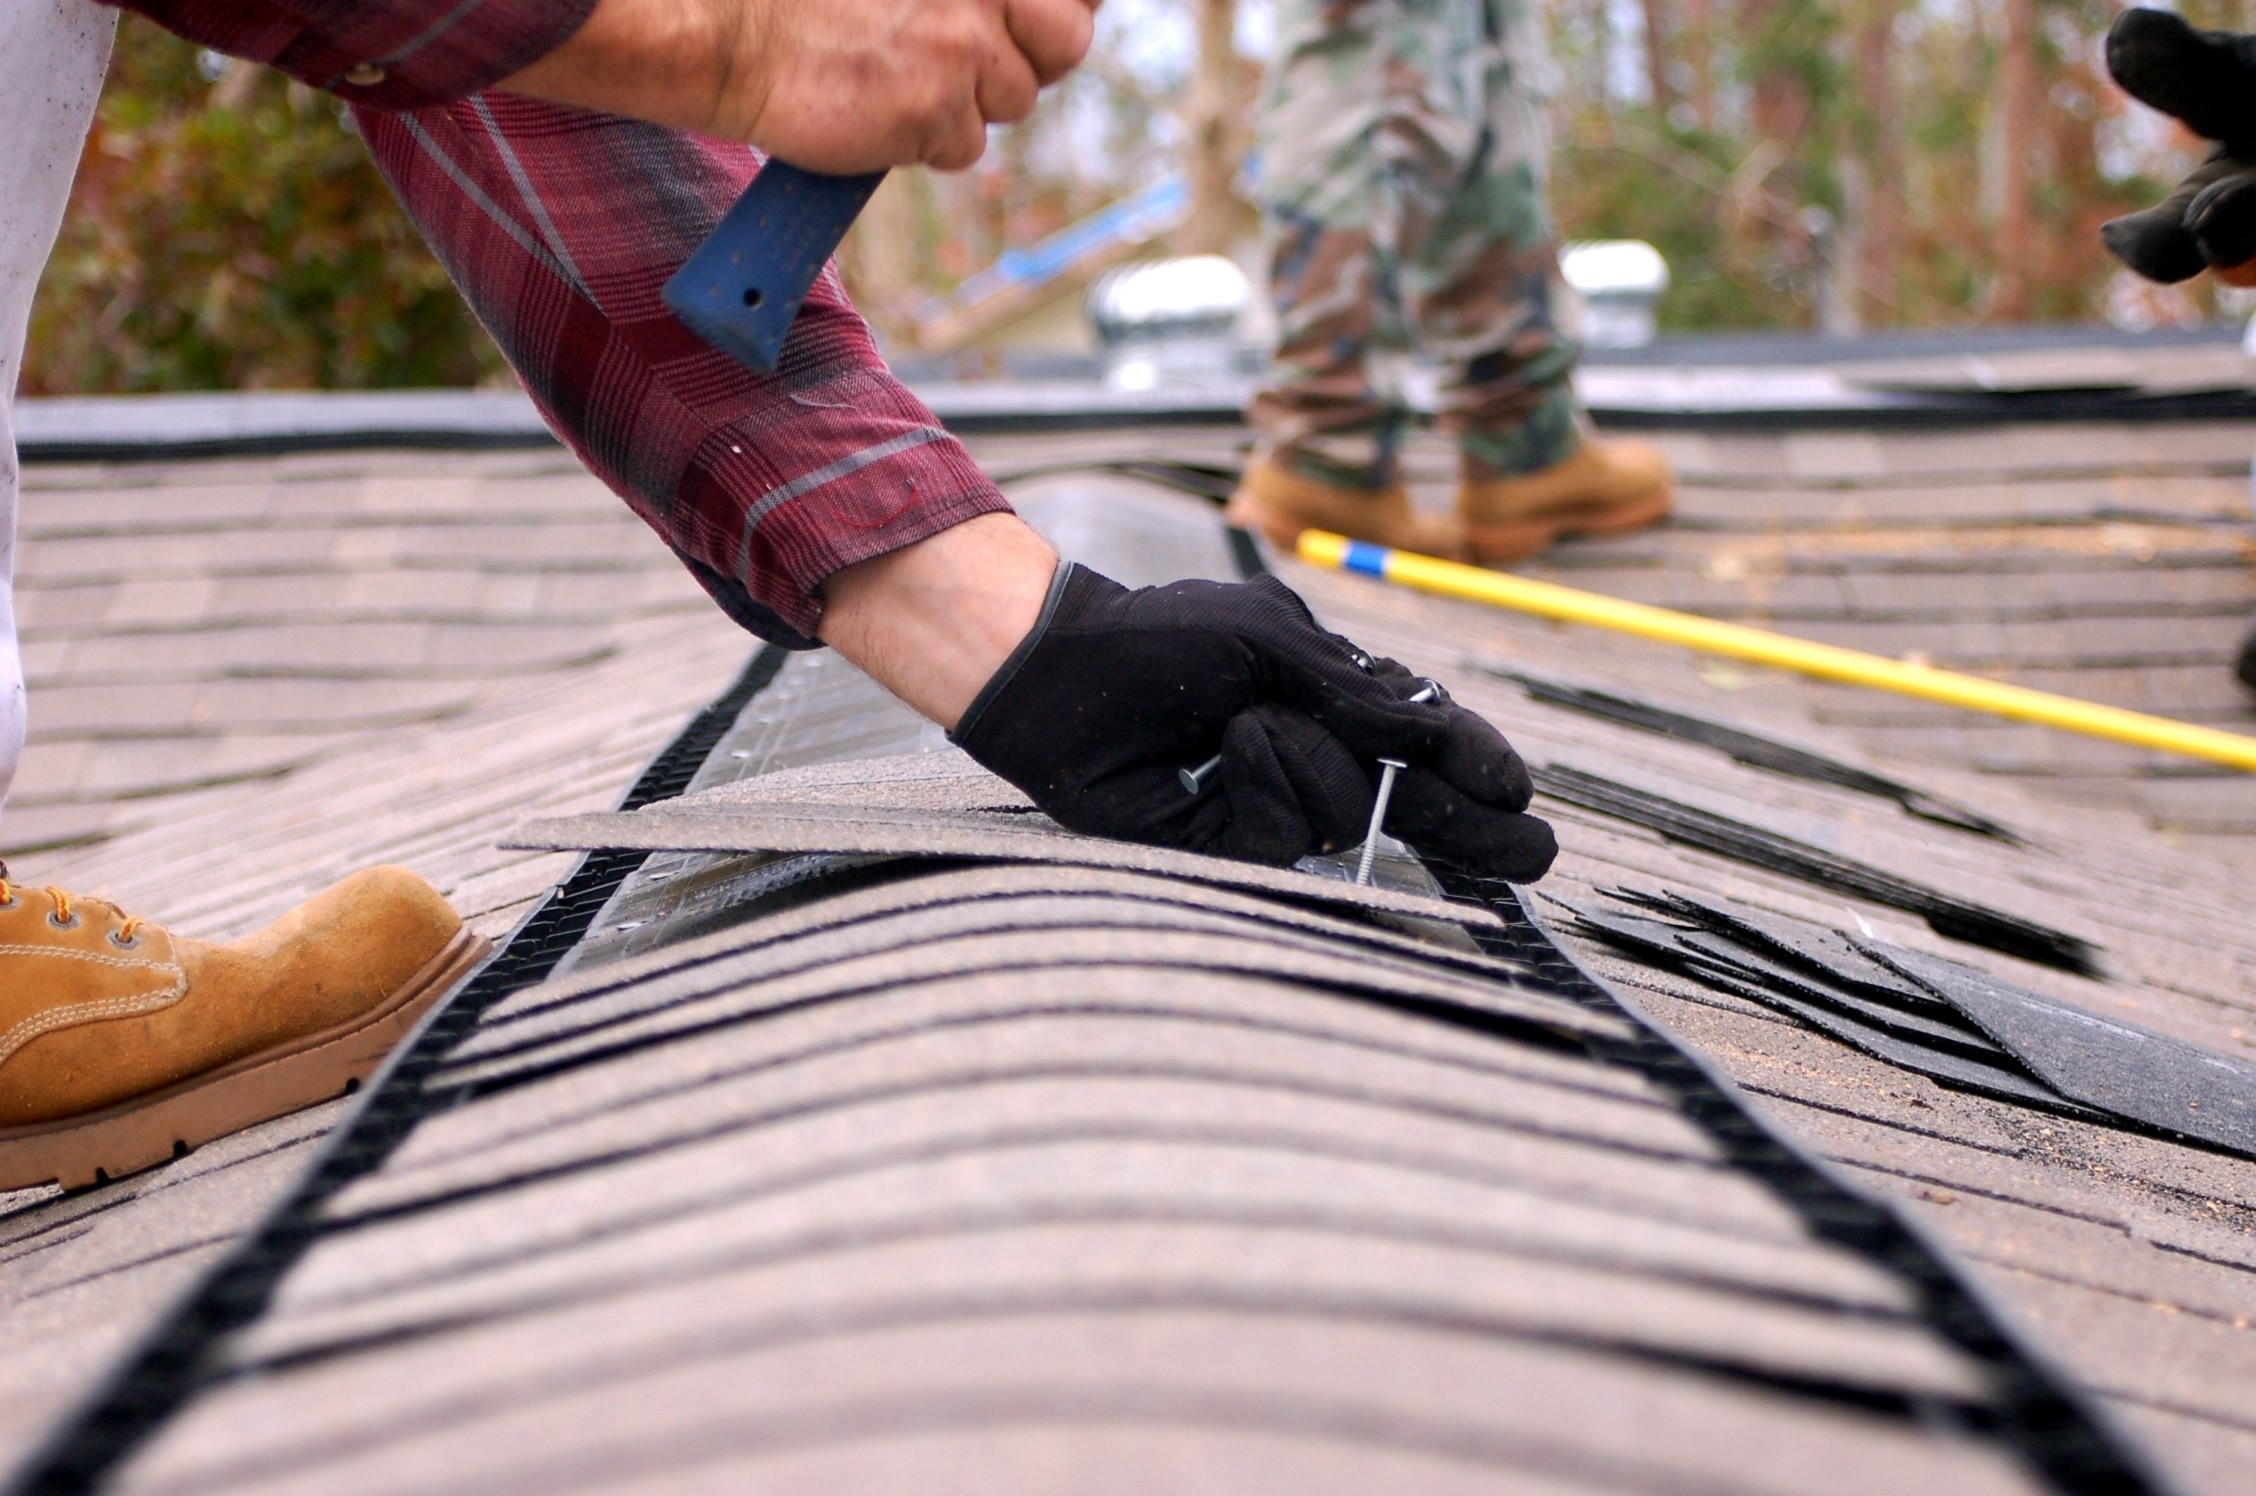 Hire Best Roofing Contractors To Protect House From Damages By Roofing Allen Medium